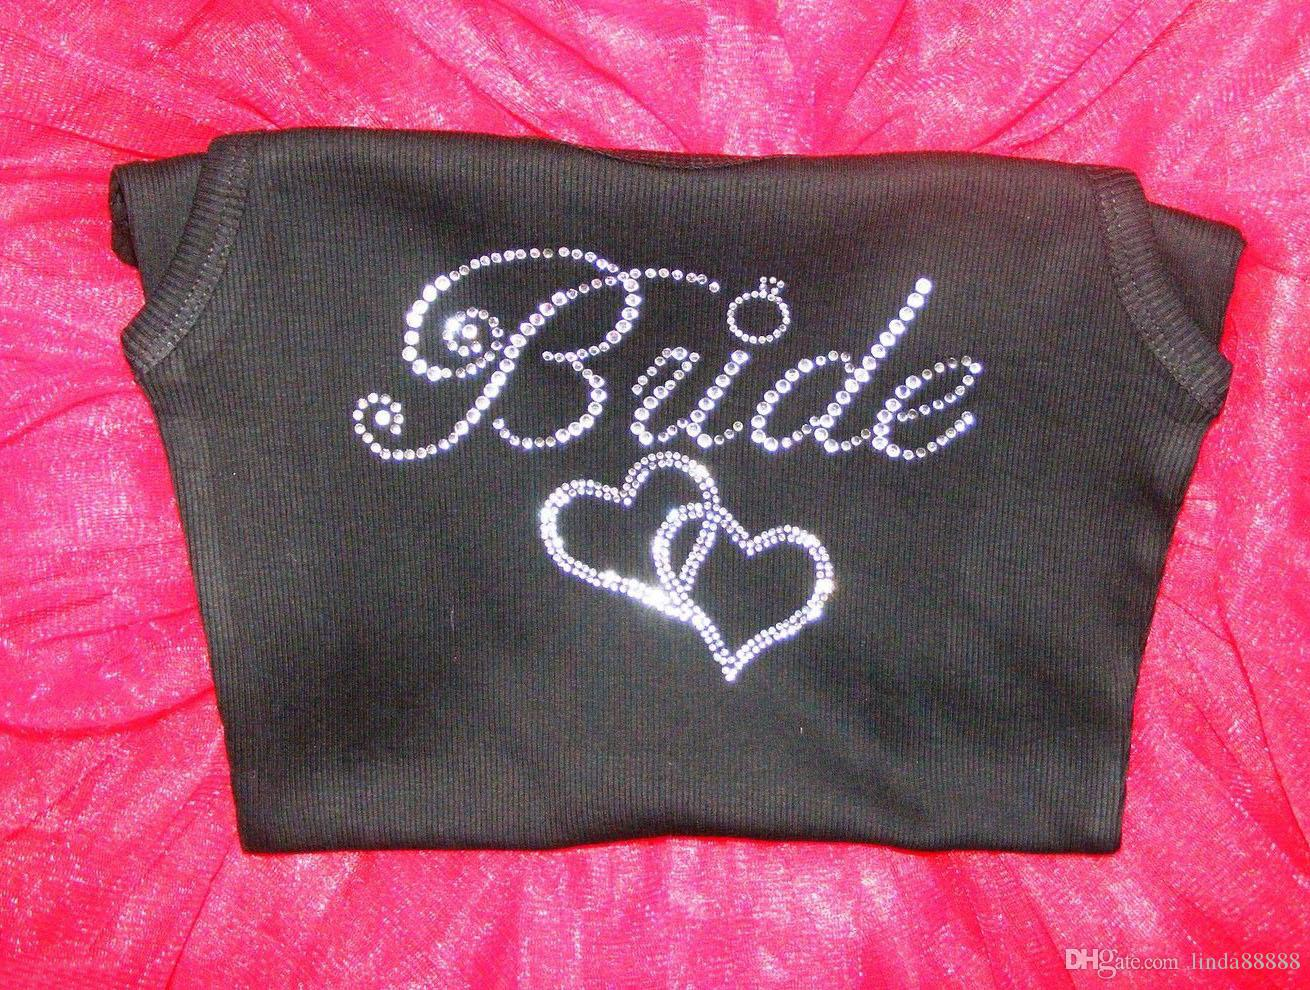 Wedding Bride Iron On Rhinestone Sticker Hotfix Bride With Double Hearts Motif Crystal For T-shirt Sweater